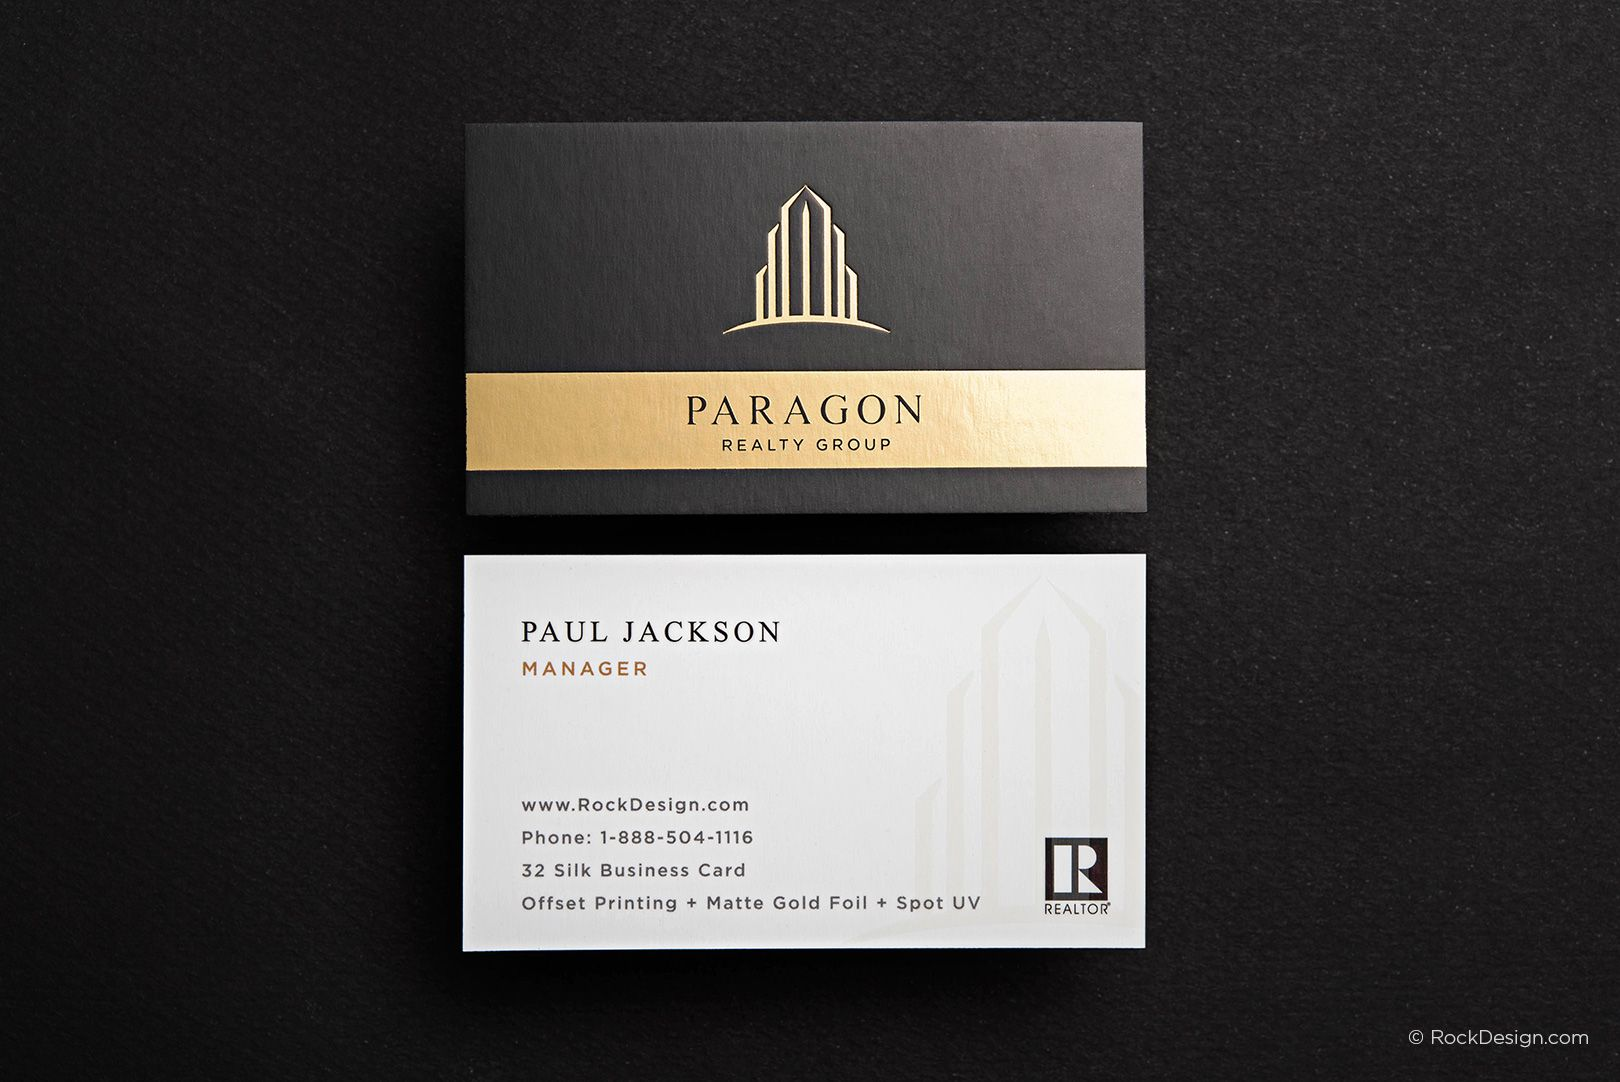 Modern realtor silk business card template with foil and spot uv modern realtor silk business card template with foil and spot uv paragon rockdesign luxury business card printing reheart Images